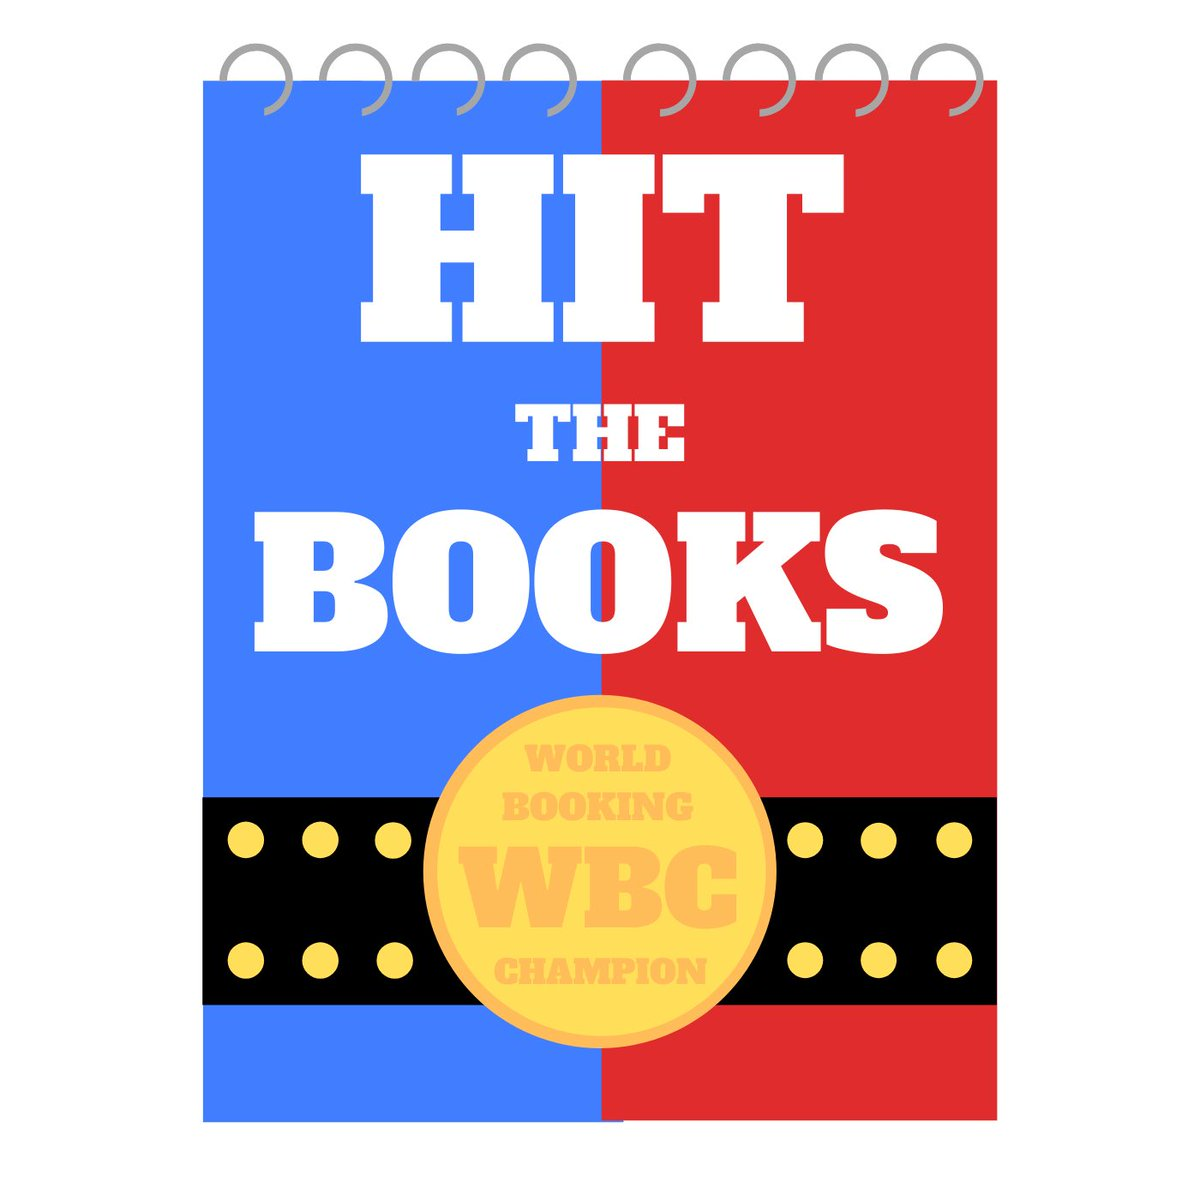 Hit the Books Podcast S3 Ep 17  Ryan and Mikey book their own versions of both #WWERaw and #SmackDown! They're amazing cards but only you can decide who's was better! Listen and vote below!  LISTEN HERE: http://apple.co/2TxZ22P  #GMMode #FantasyBookingpic.twitter.com/9vLspWsE59